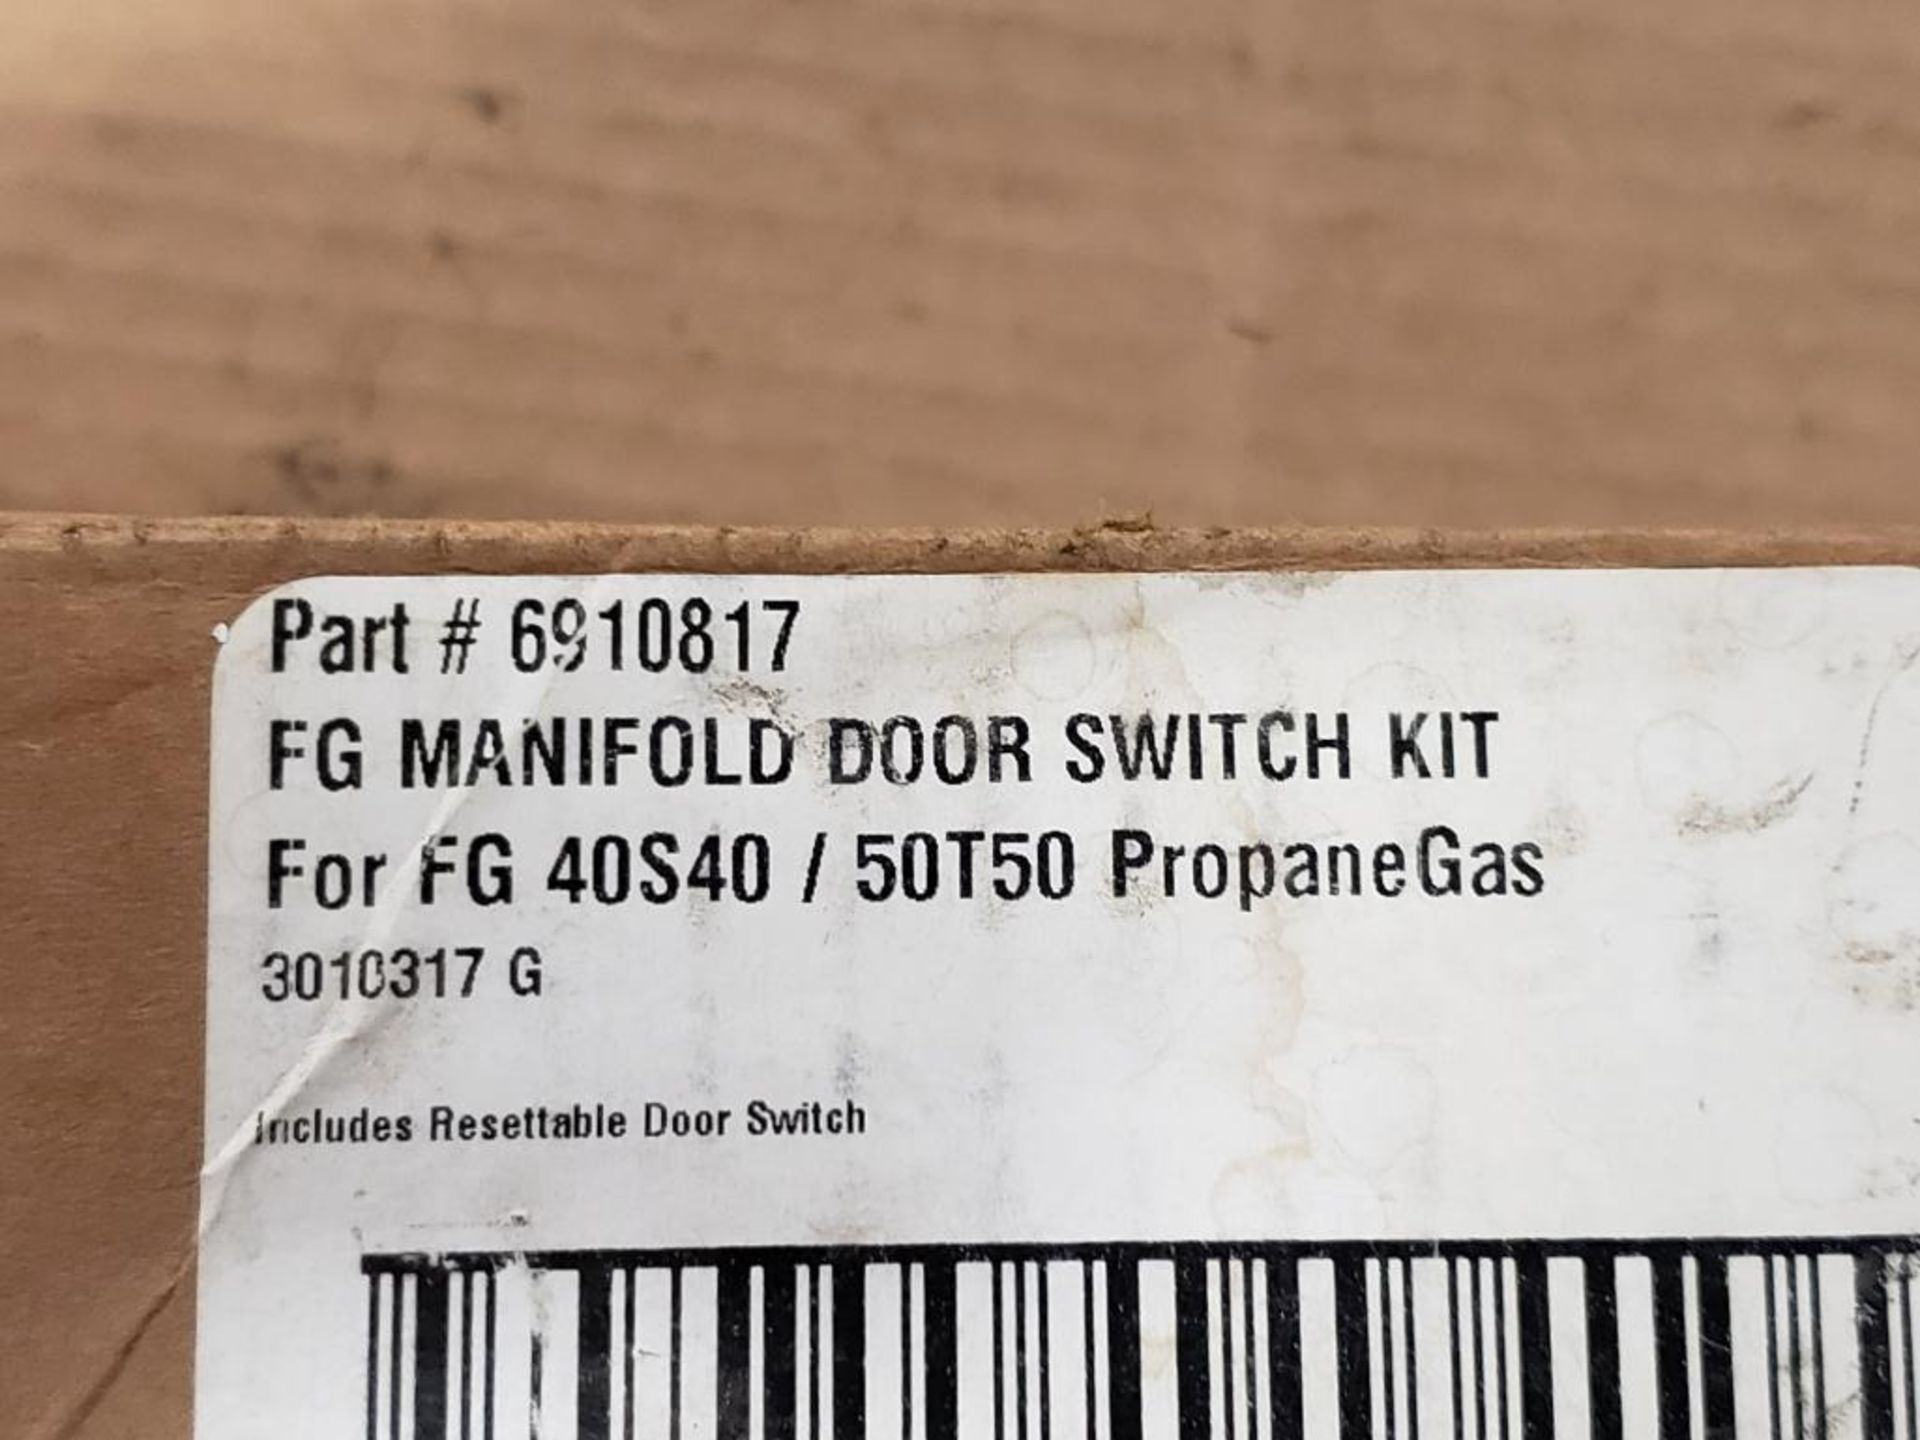 6910817 FG Manifold Door Switch Kit for FG 40S40 / 50T50 Propane Gas. - Image 2 of 3